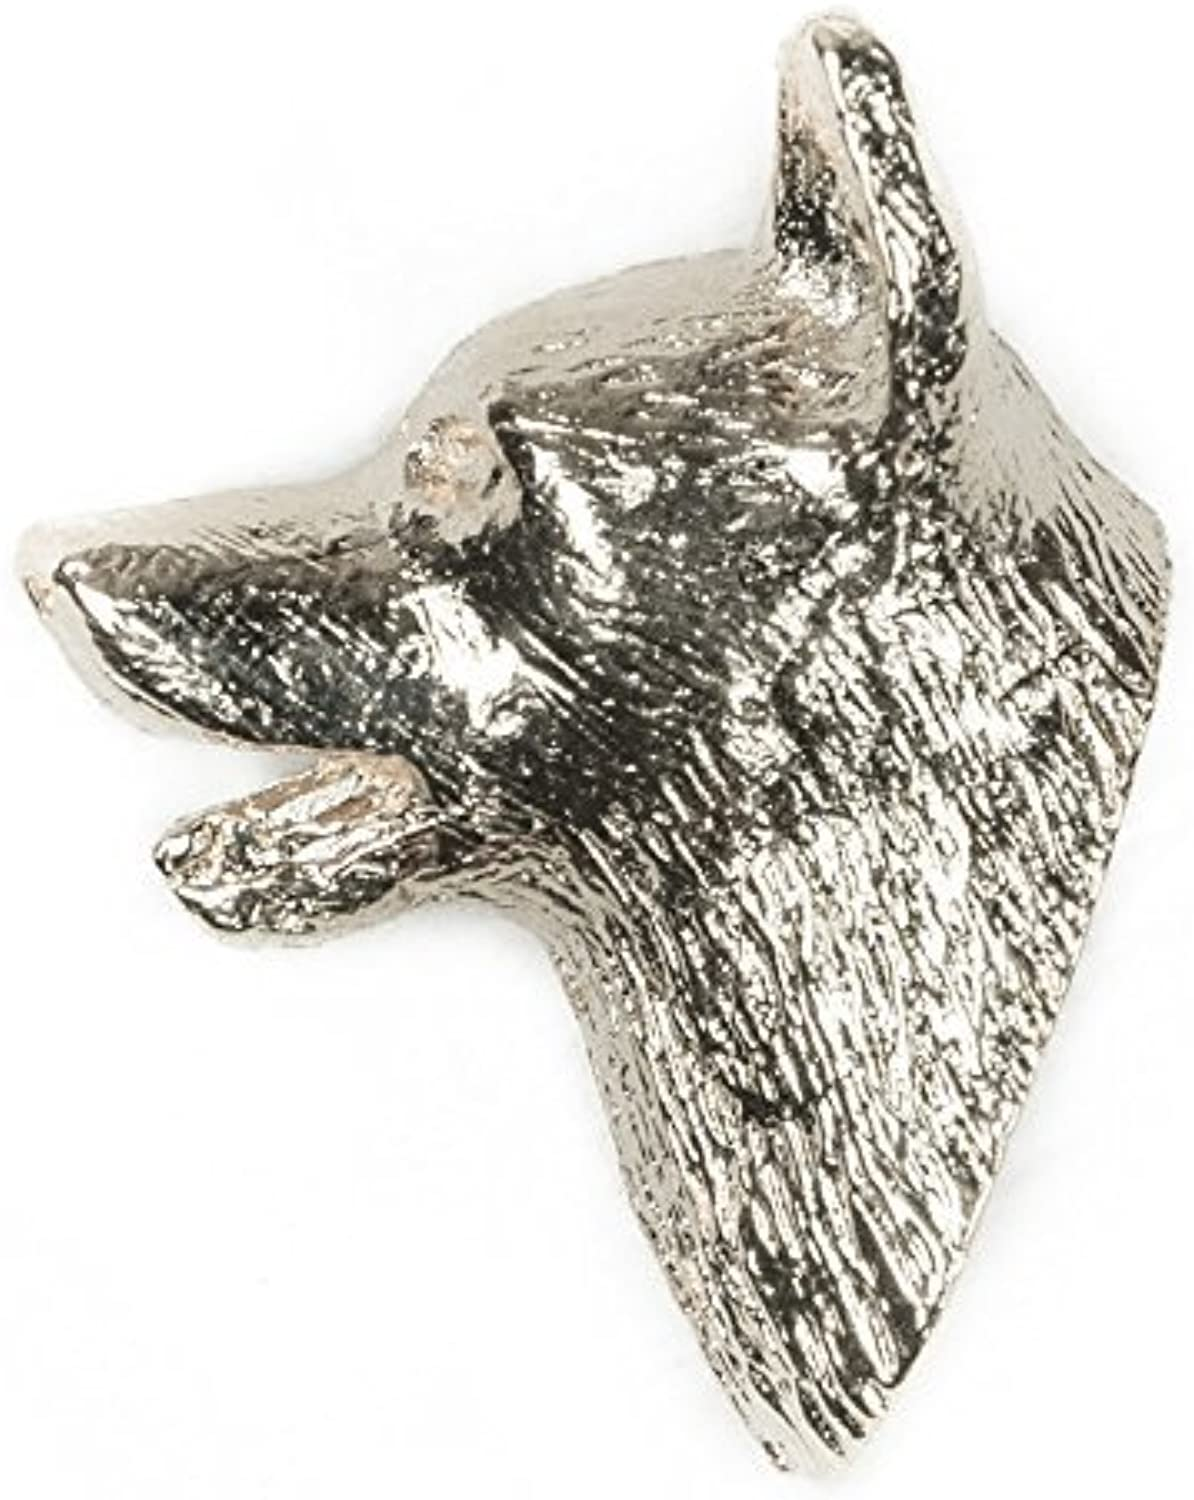 NORWEIGAN BUHUND Made in U.K Artistic Style Dog Clutch Lapel Pin Collection by DOG ARTS JP